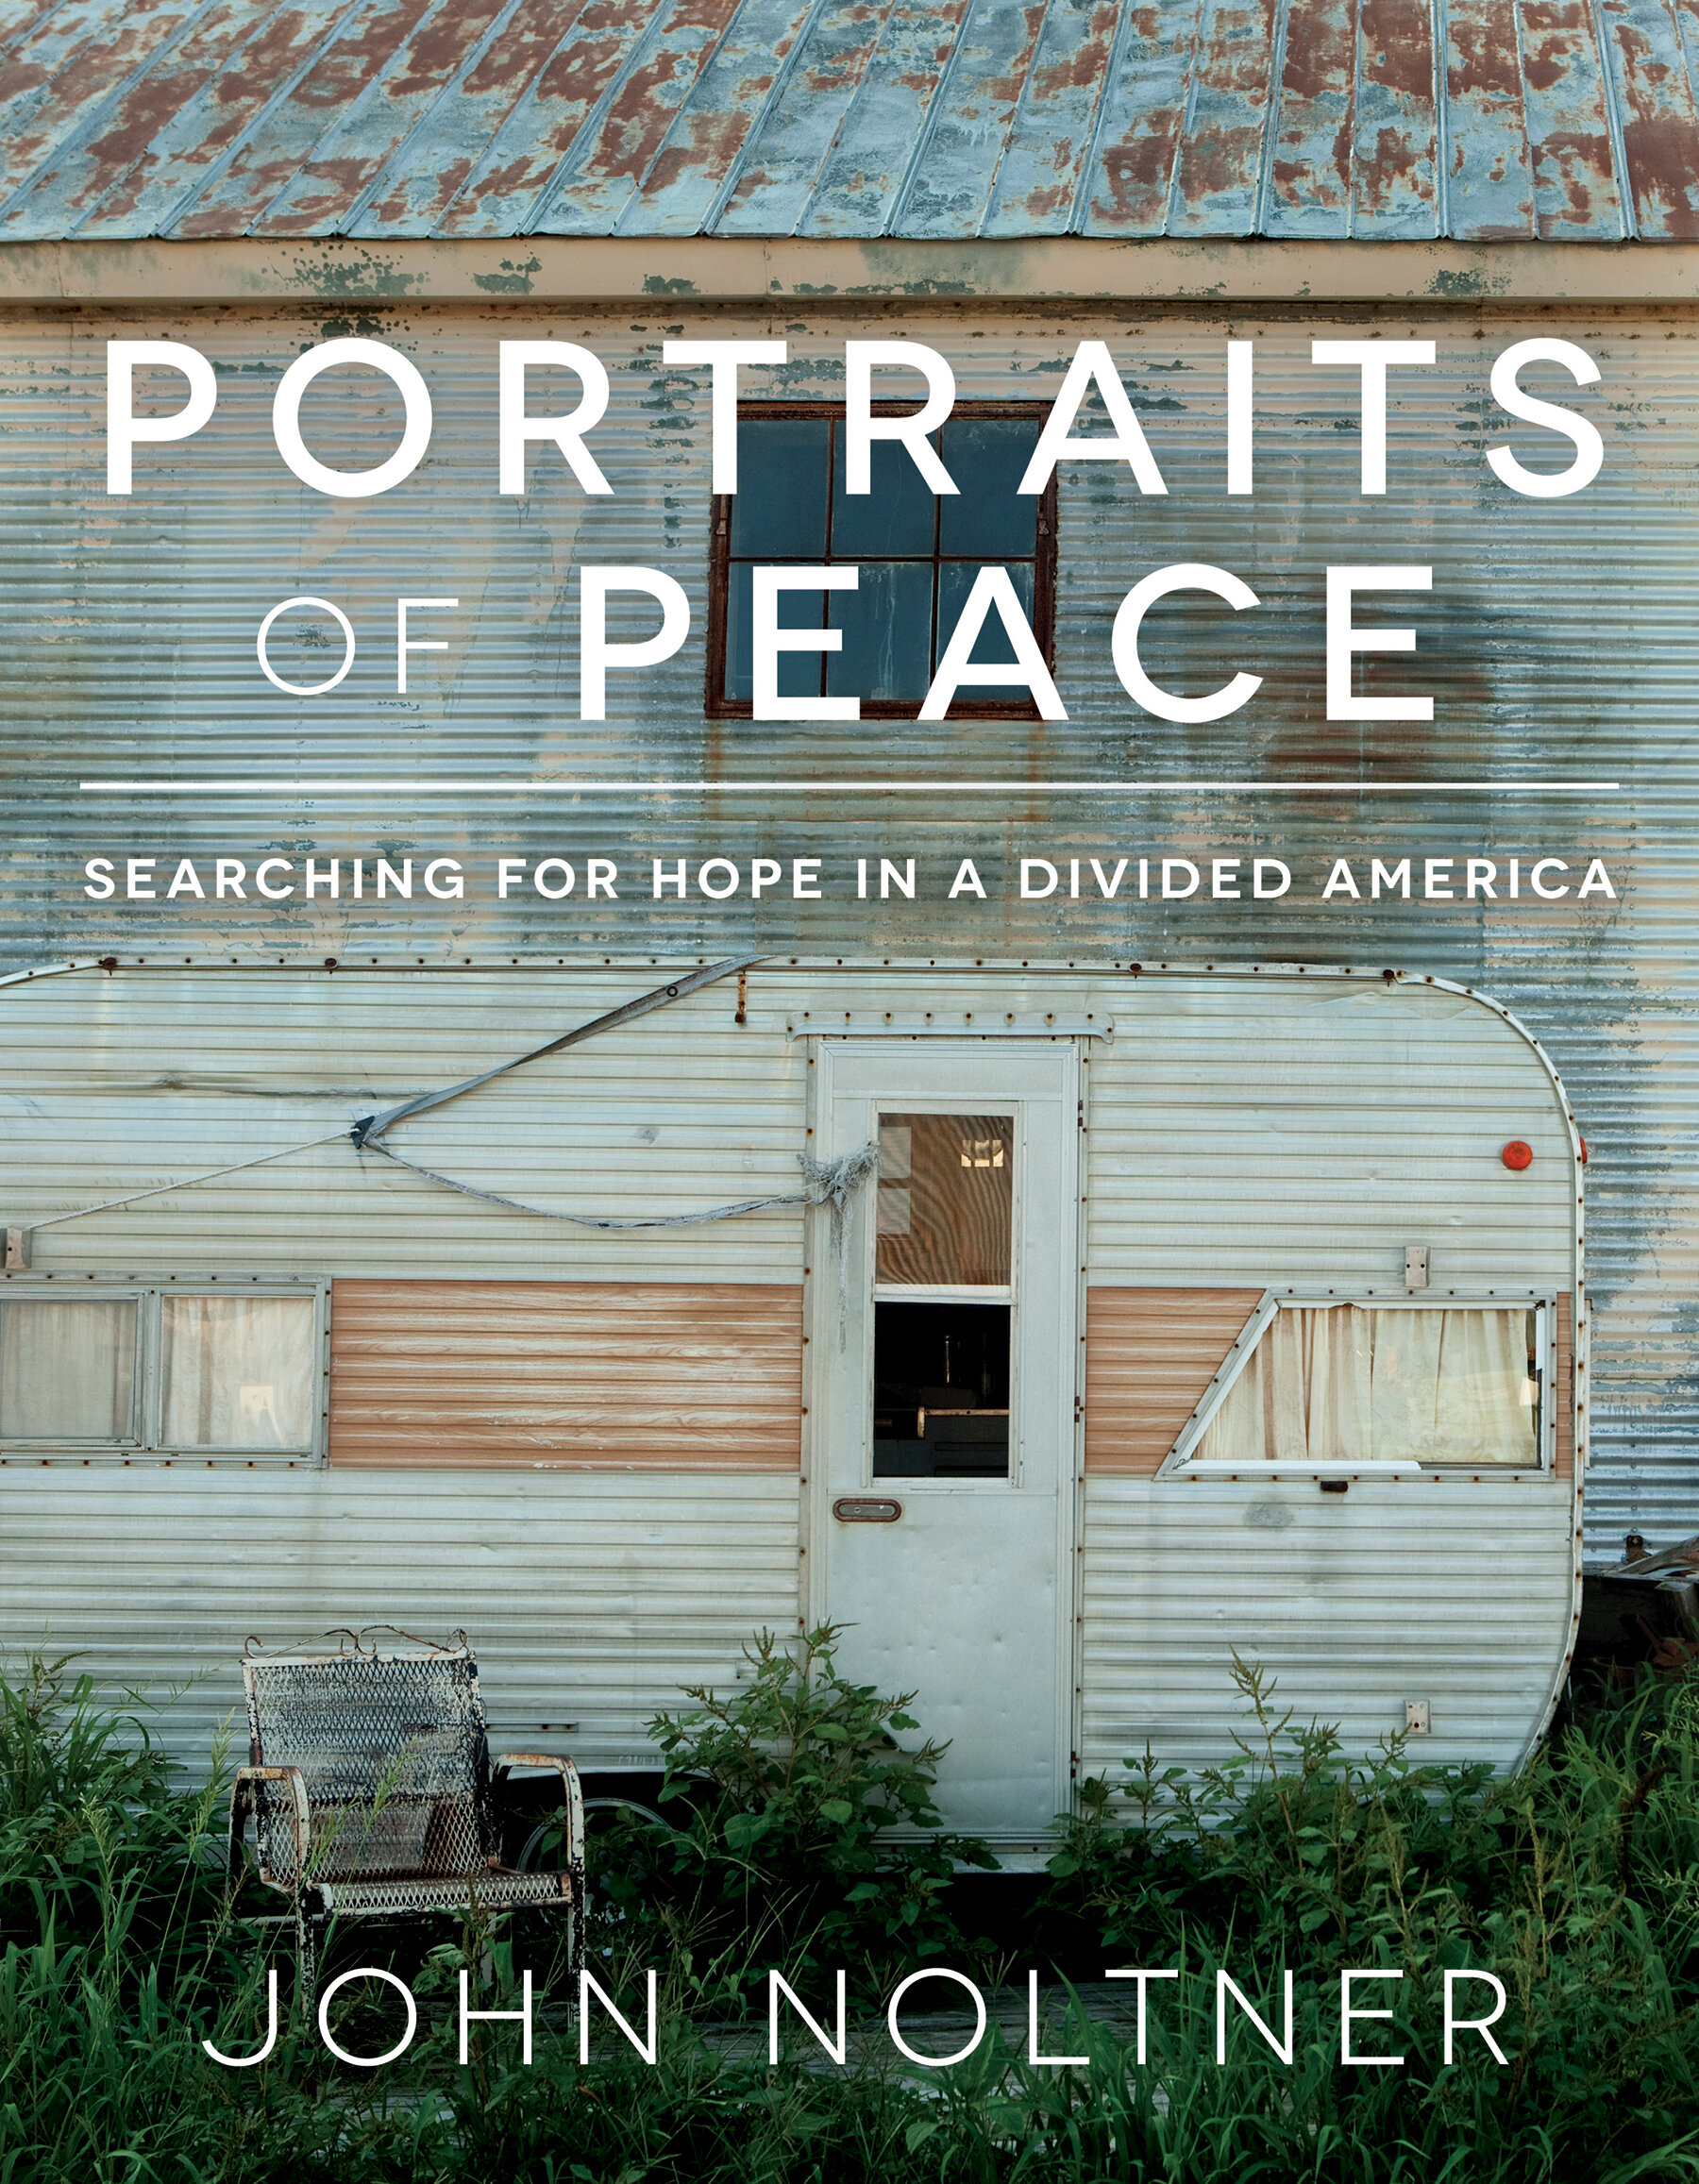 Portraits of Peace: Searching for Hope in a Divided America